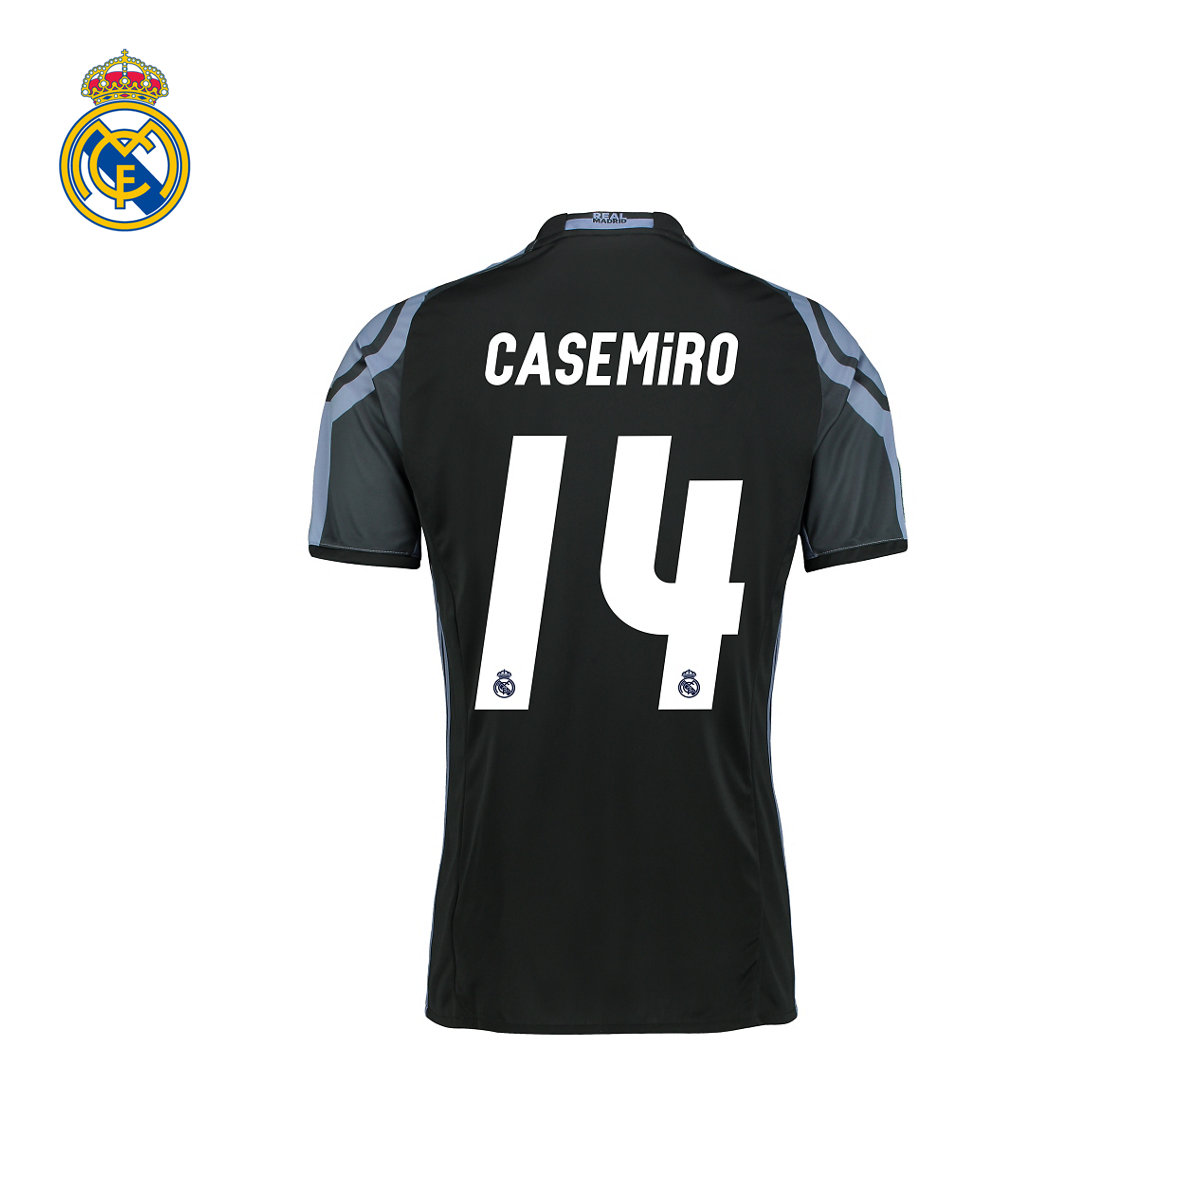 buy online 8ba66 118a6 Buy [Woman] real madrid real madrid jersey short sleeve ...